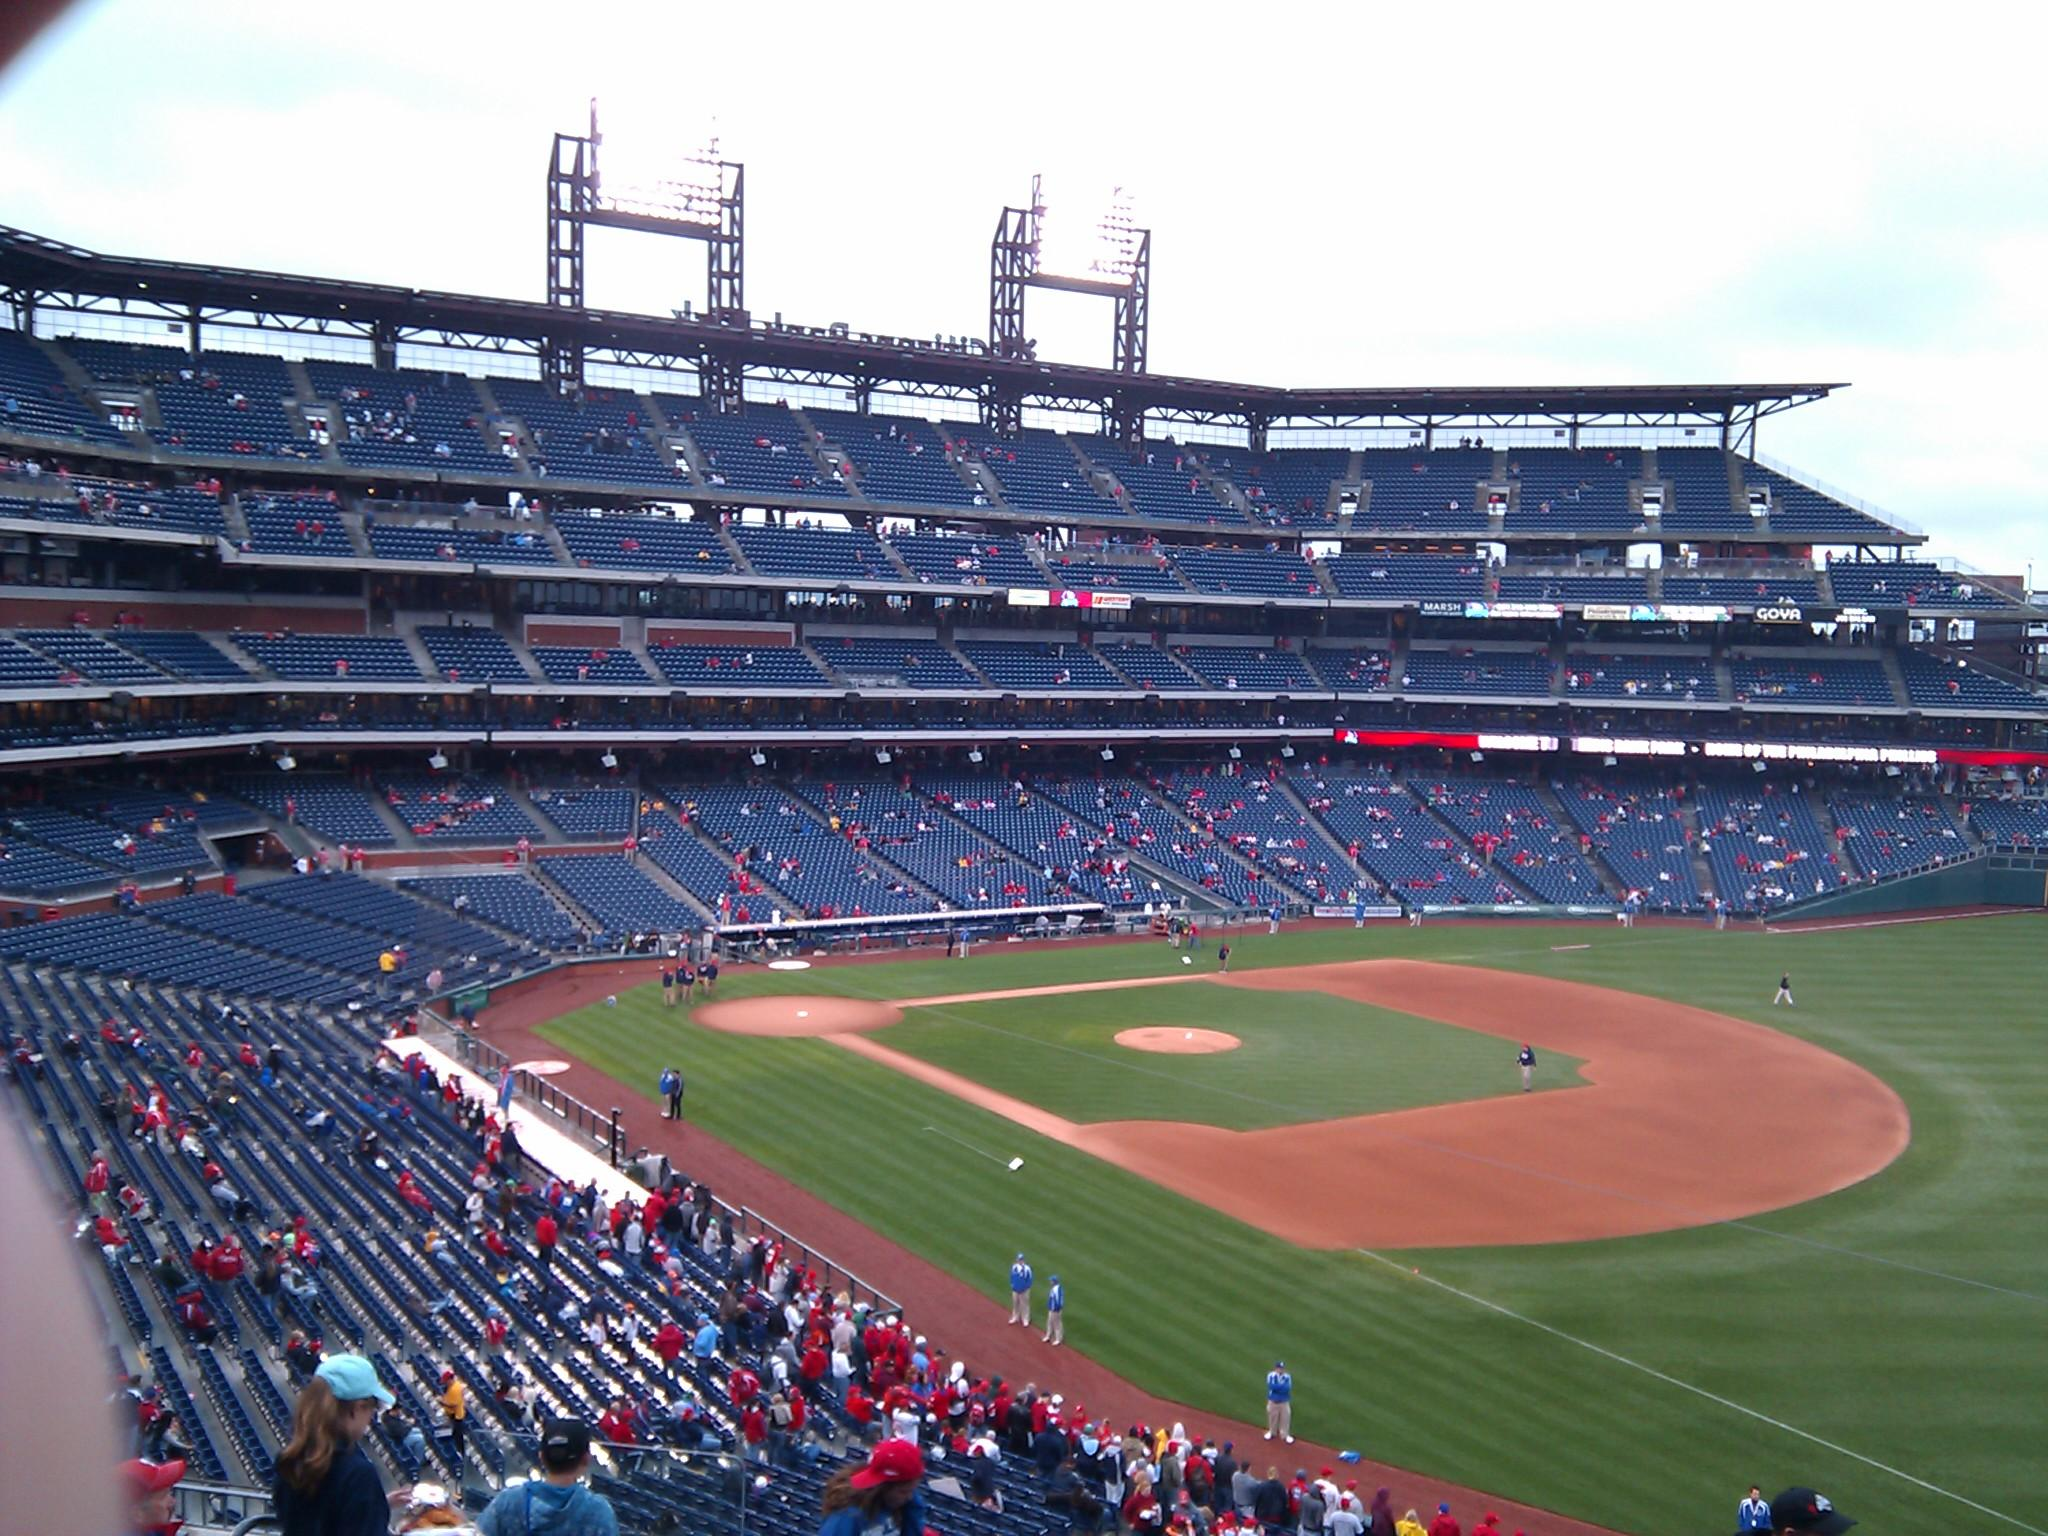 Citizens Bank Park Section 209 Row 9 Seat 19